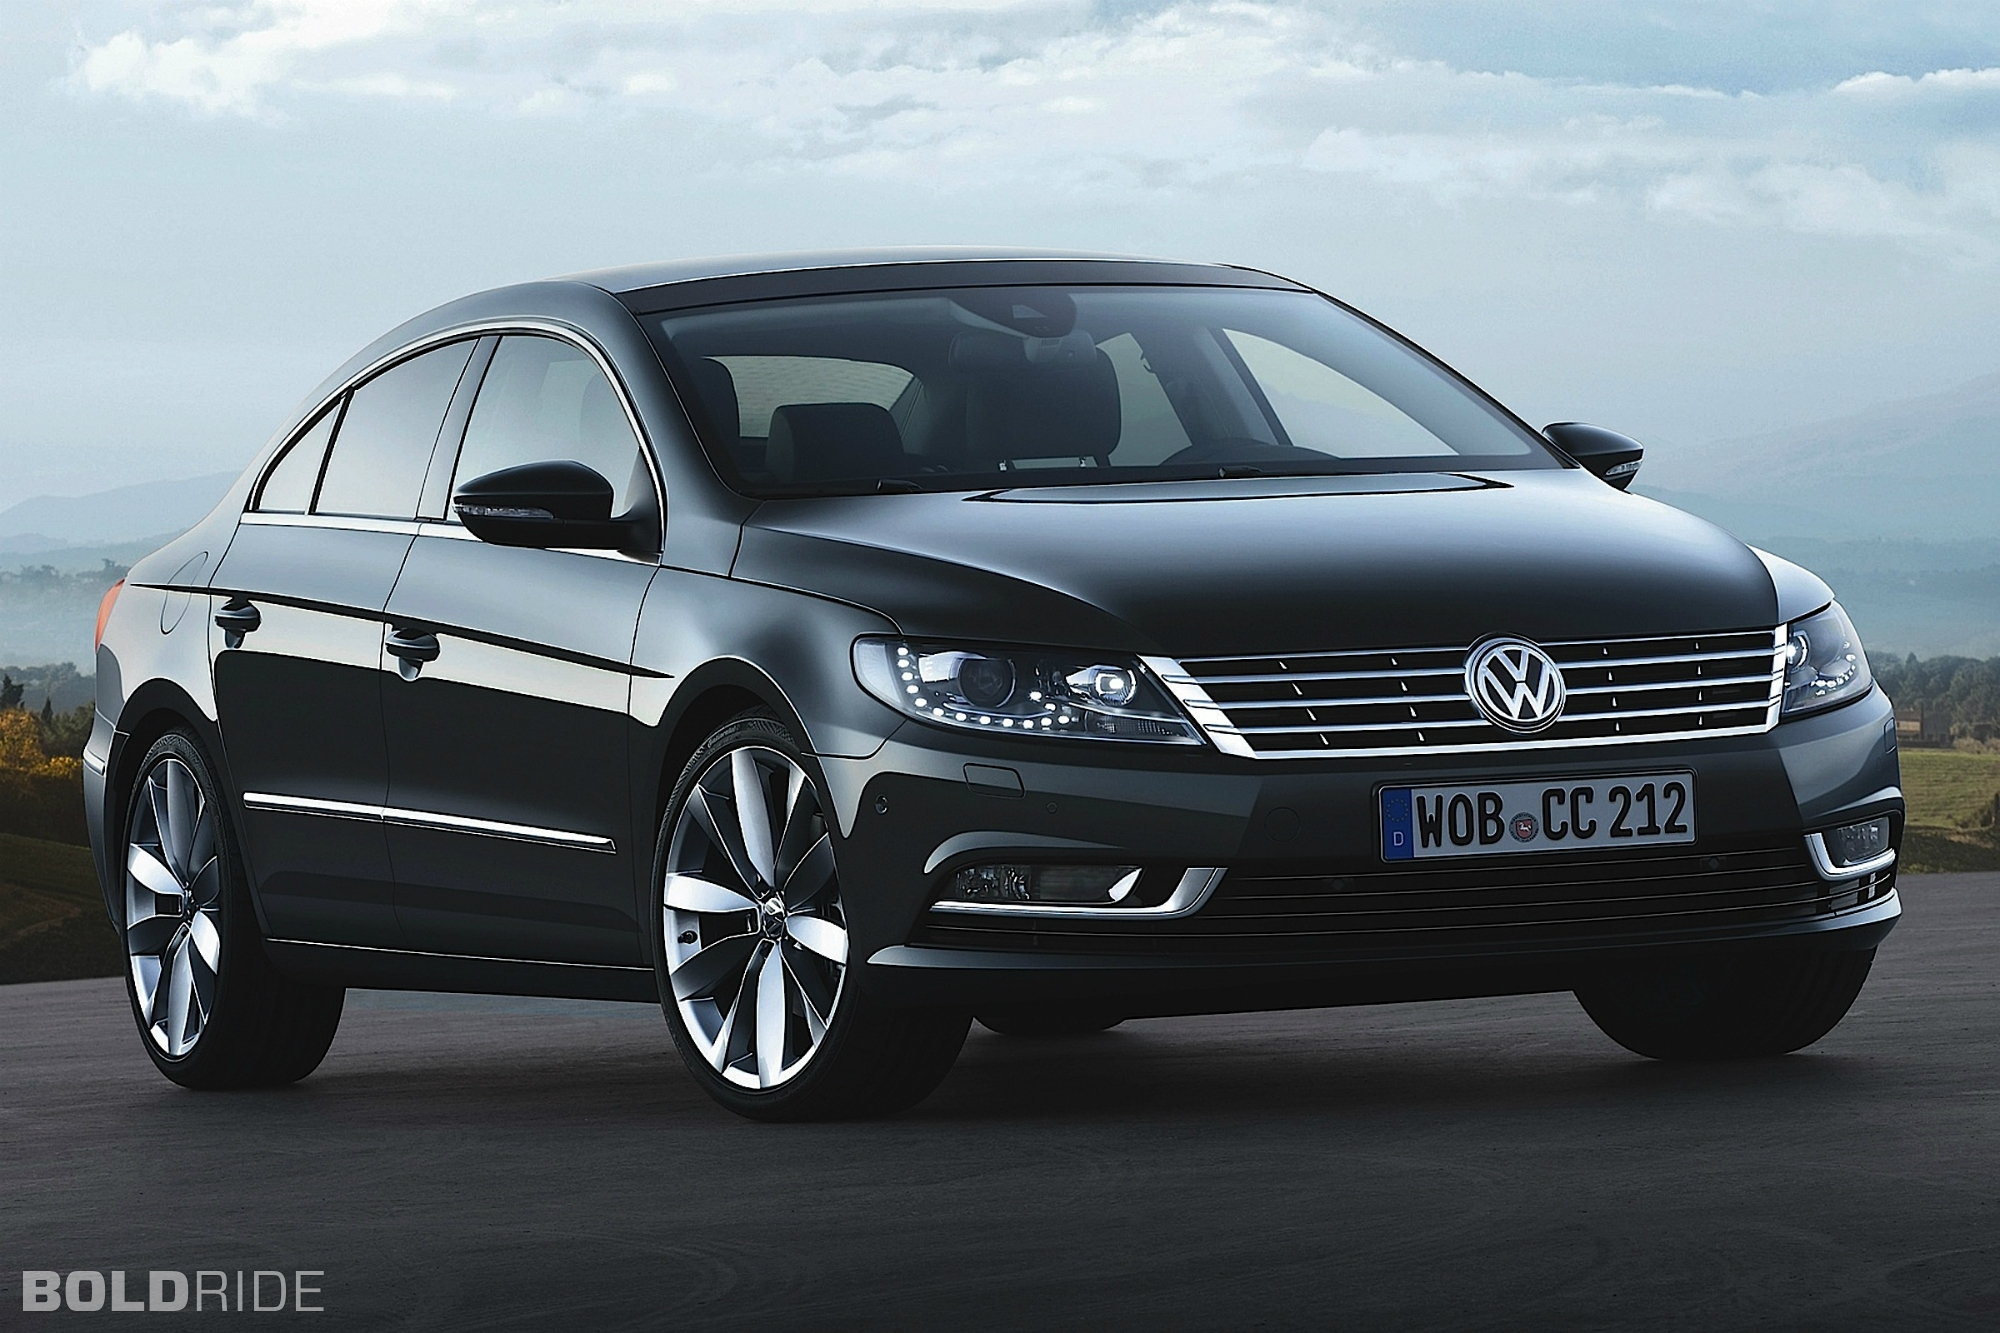 2013 volkswagen cc information and photos zombiedrive. Black Bedroom Furniture Sets. Home Design Ideas